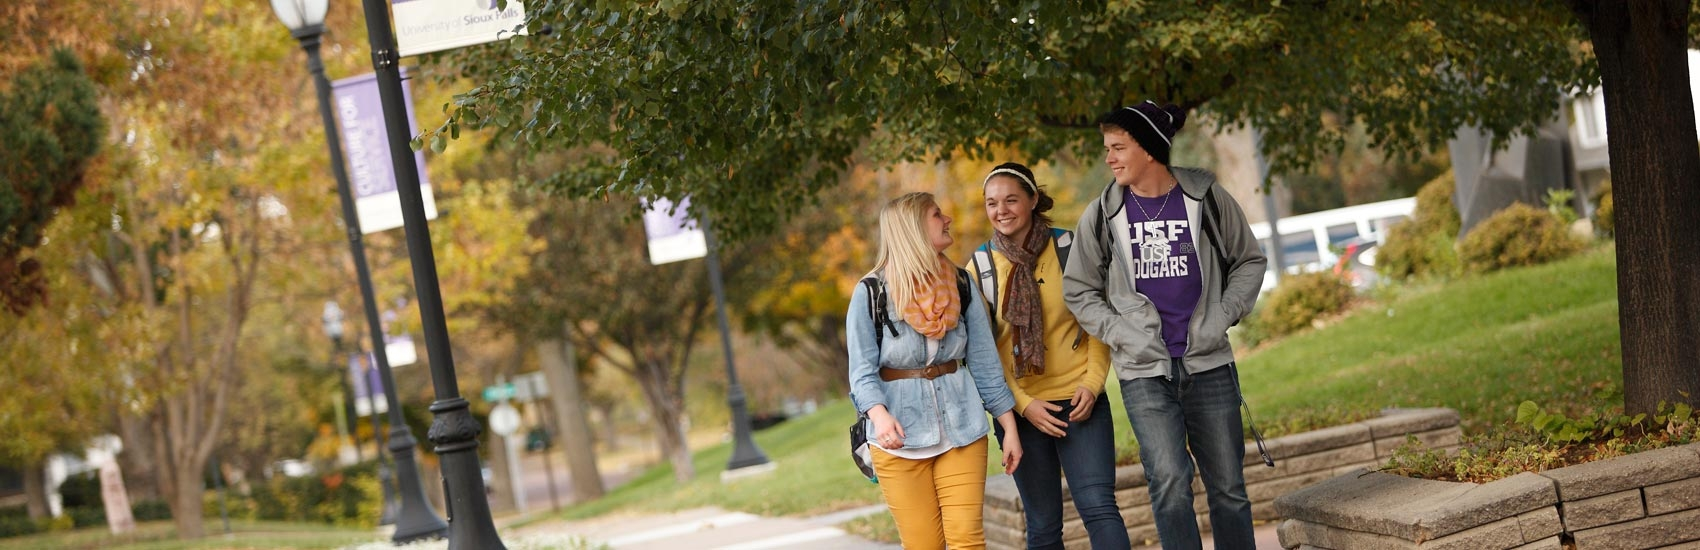 Students walking through campus in the fall.